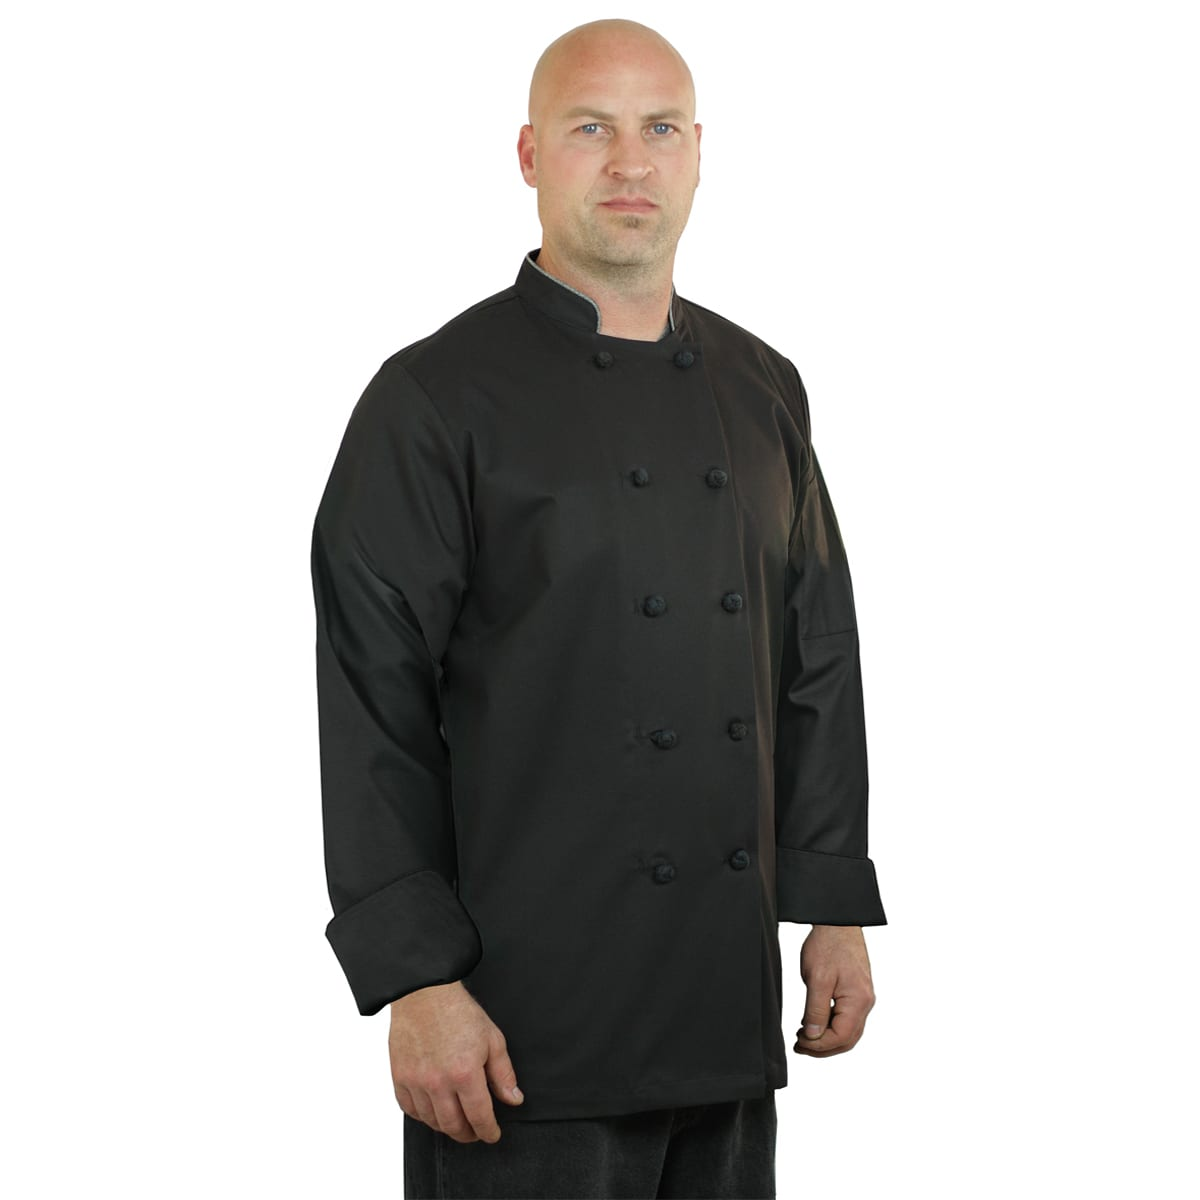 Chef Coat Designs | Black Chef Coat Long Sleeve Unisex Art Style Design Living